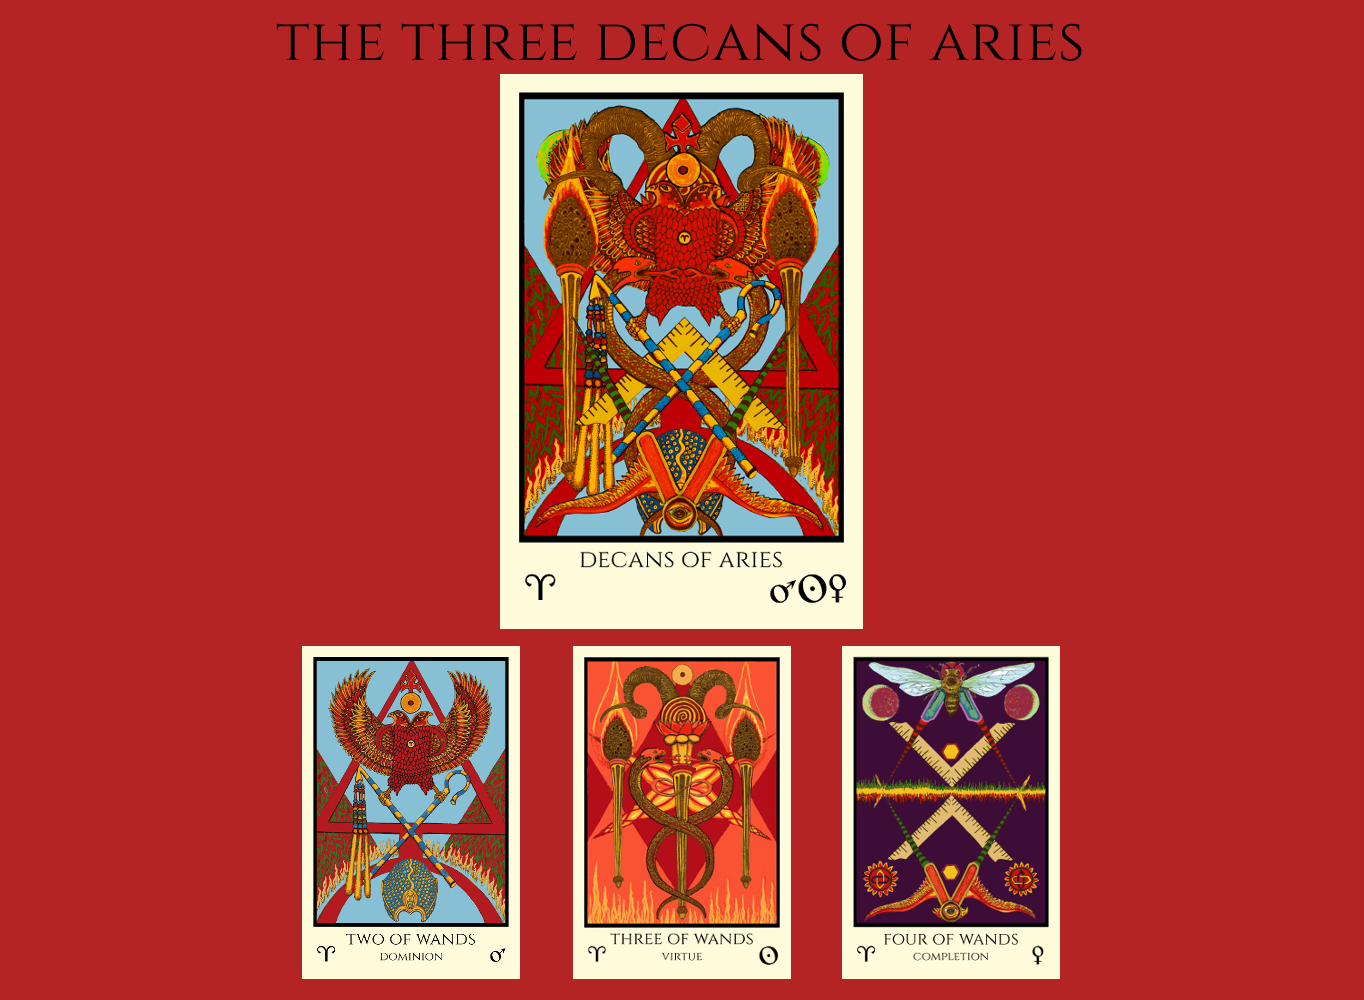 The three decans of Aries